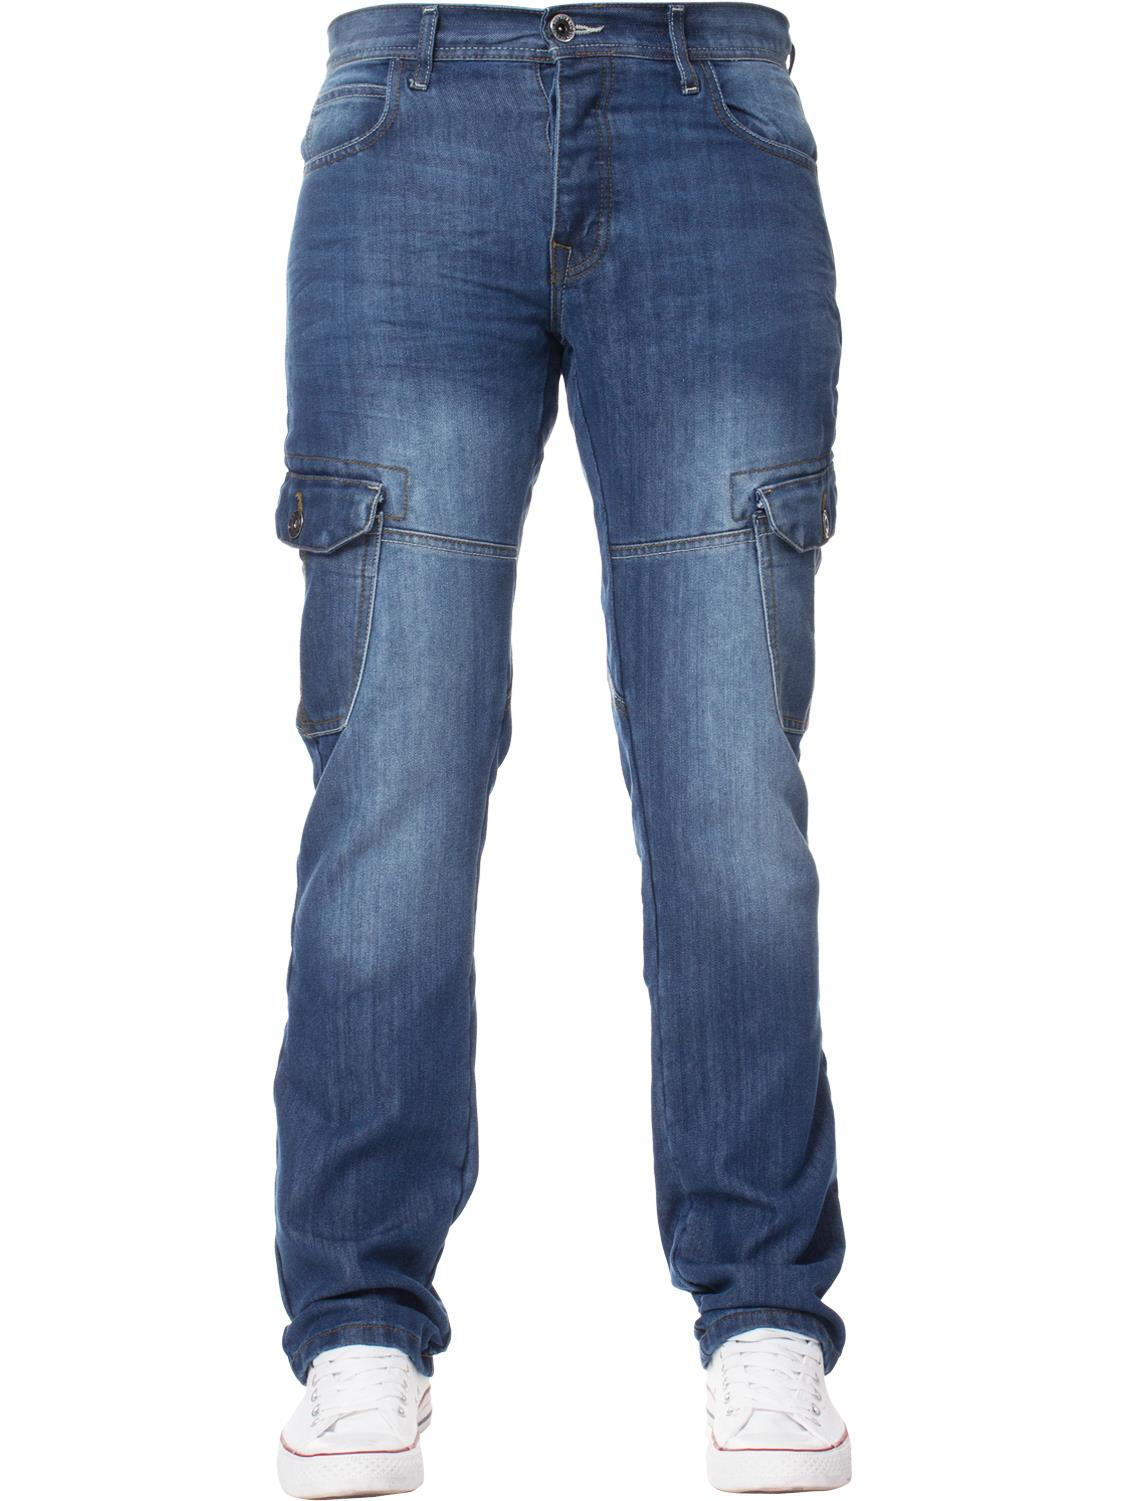 Enzo-Mens-Jeans-Big-Tall-Leg-King-Size-Denim-Pants-Chino-Trousers-Waist-44-034-60-034 miniature 85